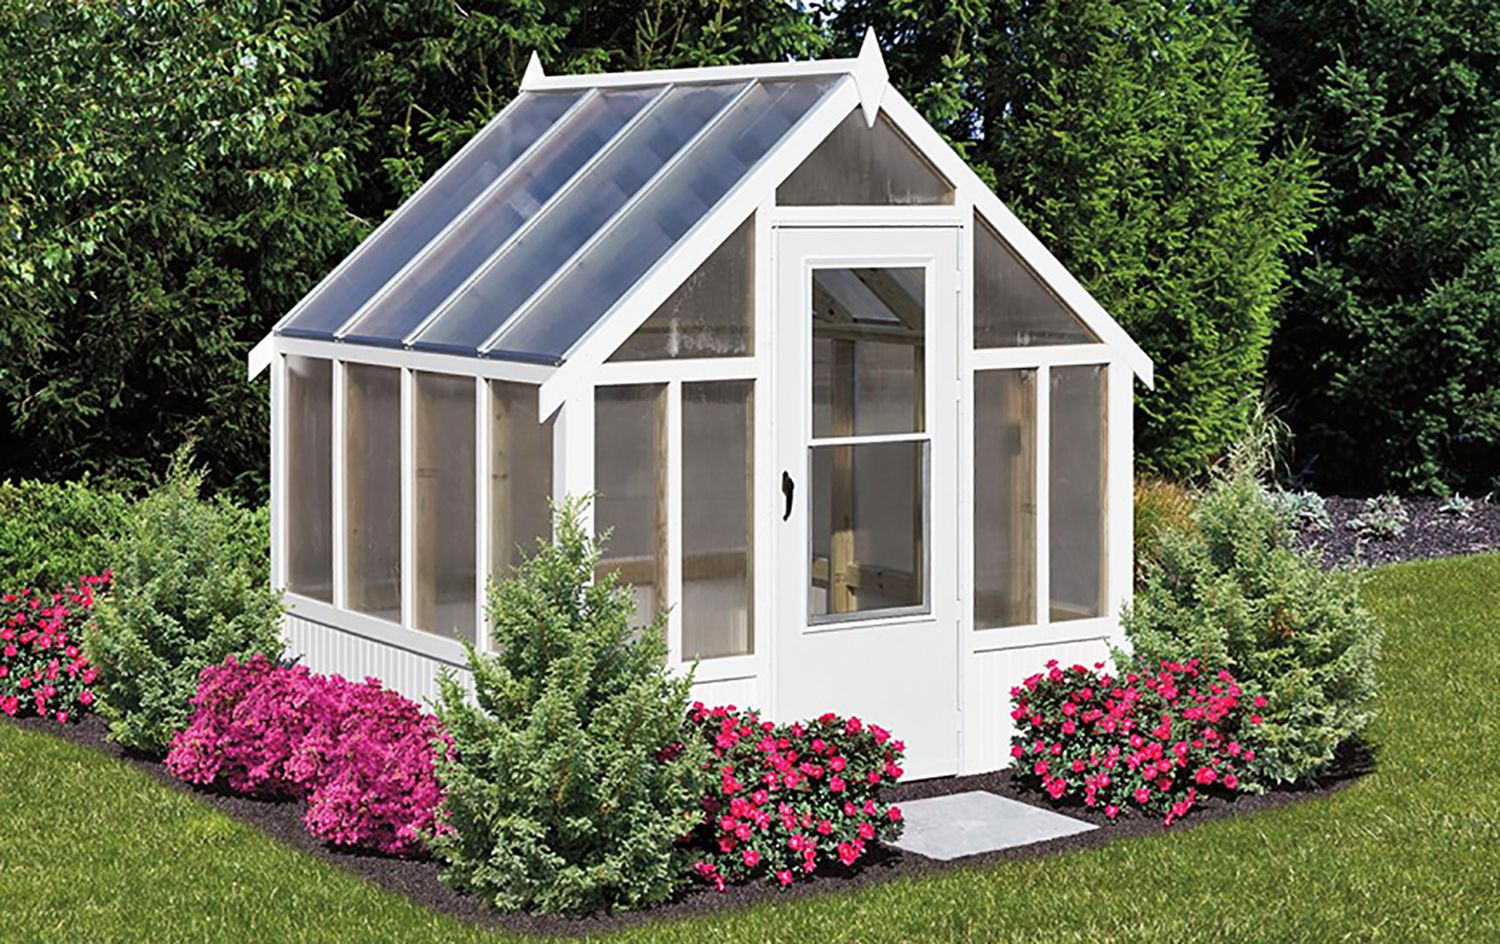 Prebuilt Greenhouse Not A Kit Greenhouses For Sale Backyard Greenhouse Greenhouse Shed Backyard greenhouse for sale